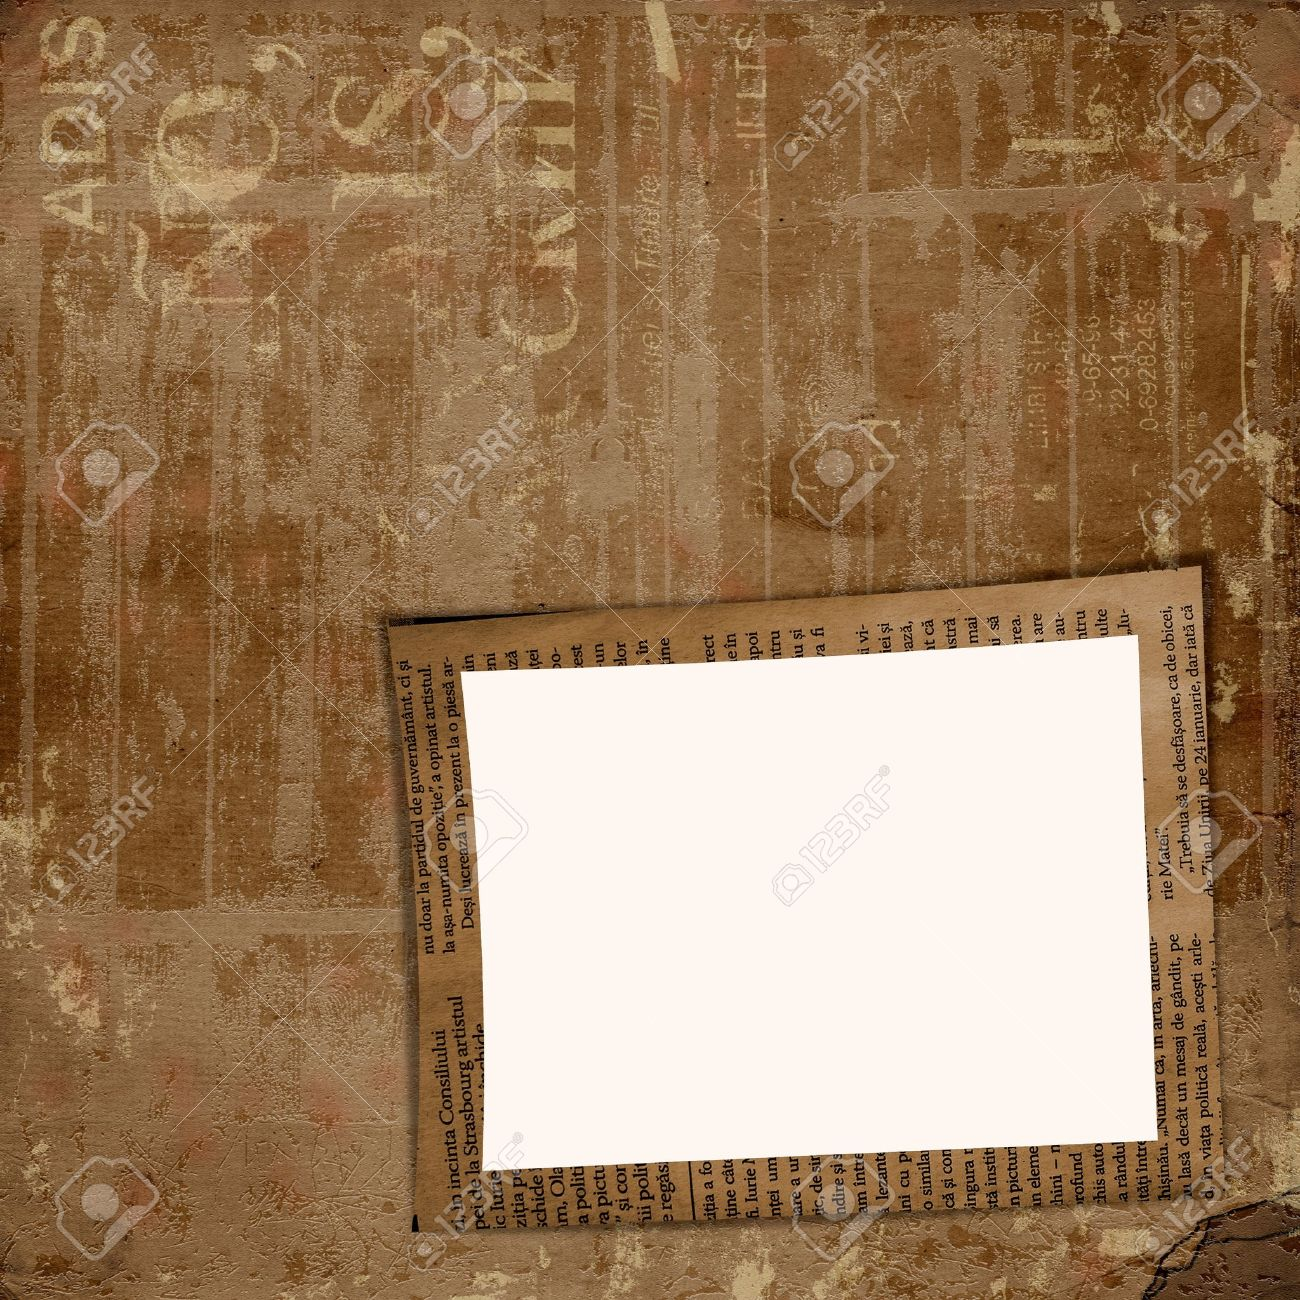 grunge cover for album or portfolio on the newspaper background with frame stock photo 12313537